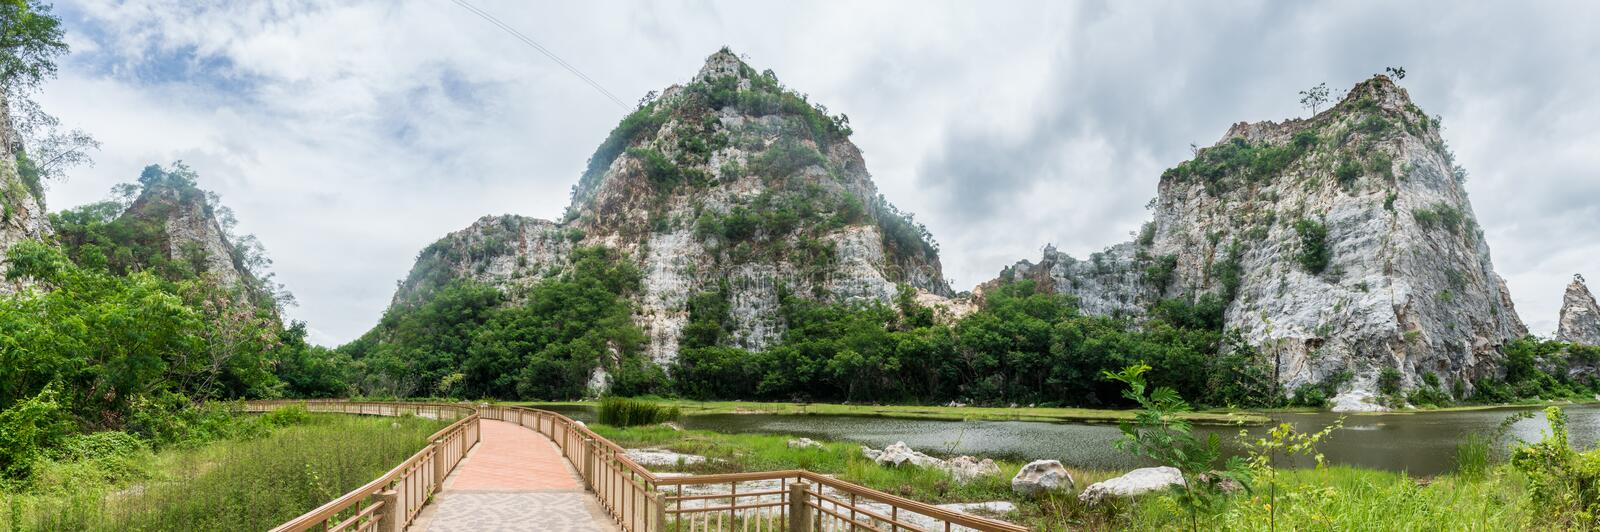 Panorama landscape of mountain with walk way at Mount Khao Ngoo Rock Park or Thueak Khao Ngu, Ratchaburi Ancient monuments stock image